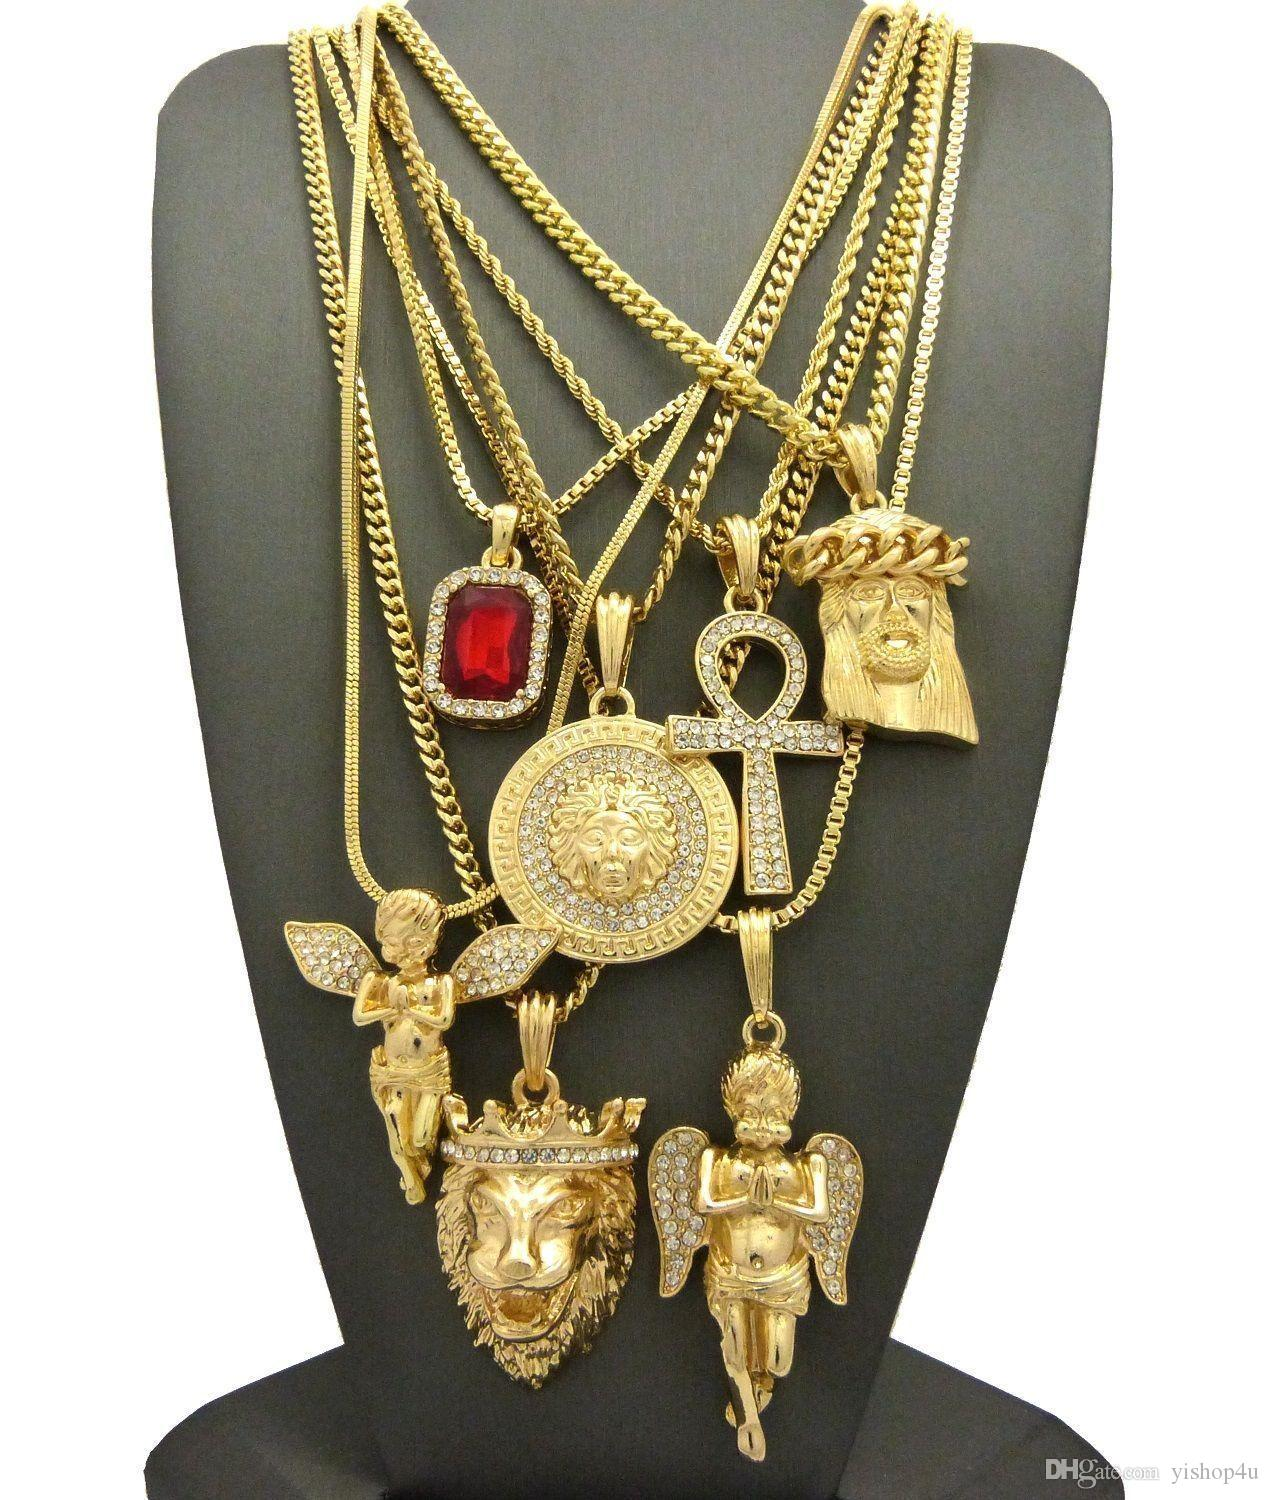 Wholesale mens hip hop ruby 2 angels jesus lion madusa ankh wholesale mens hip hop ruby 2 angels jesus lion madusa ankh pendant 7 necklace set jewelry pendants gold necklace for women from yishop4u mozeypictures Choice Image